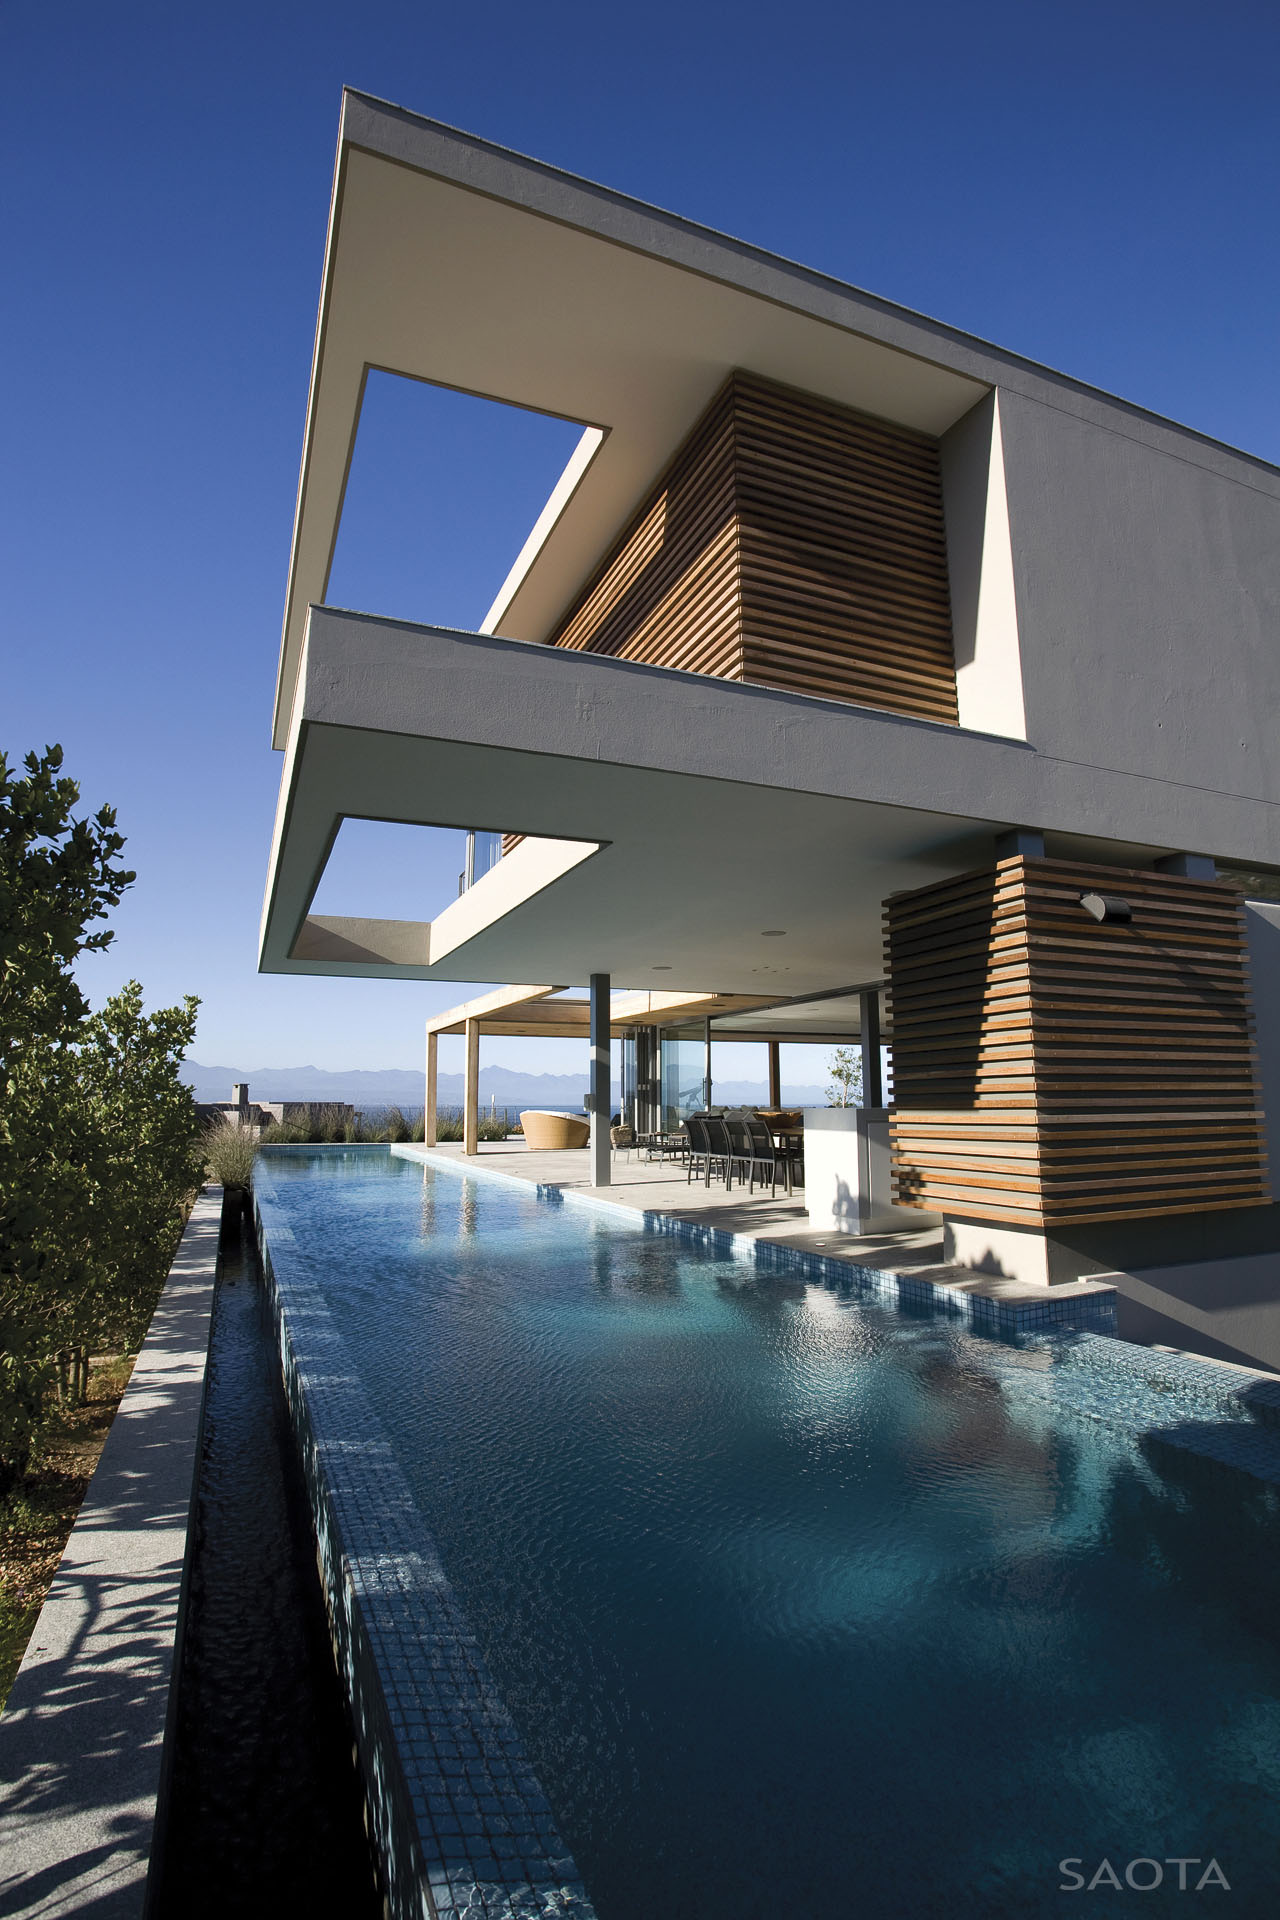 Contemporary beachfront home in south africa idesignarch - Modern house with pool ...